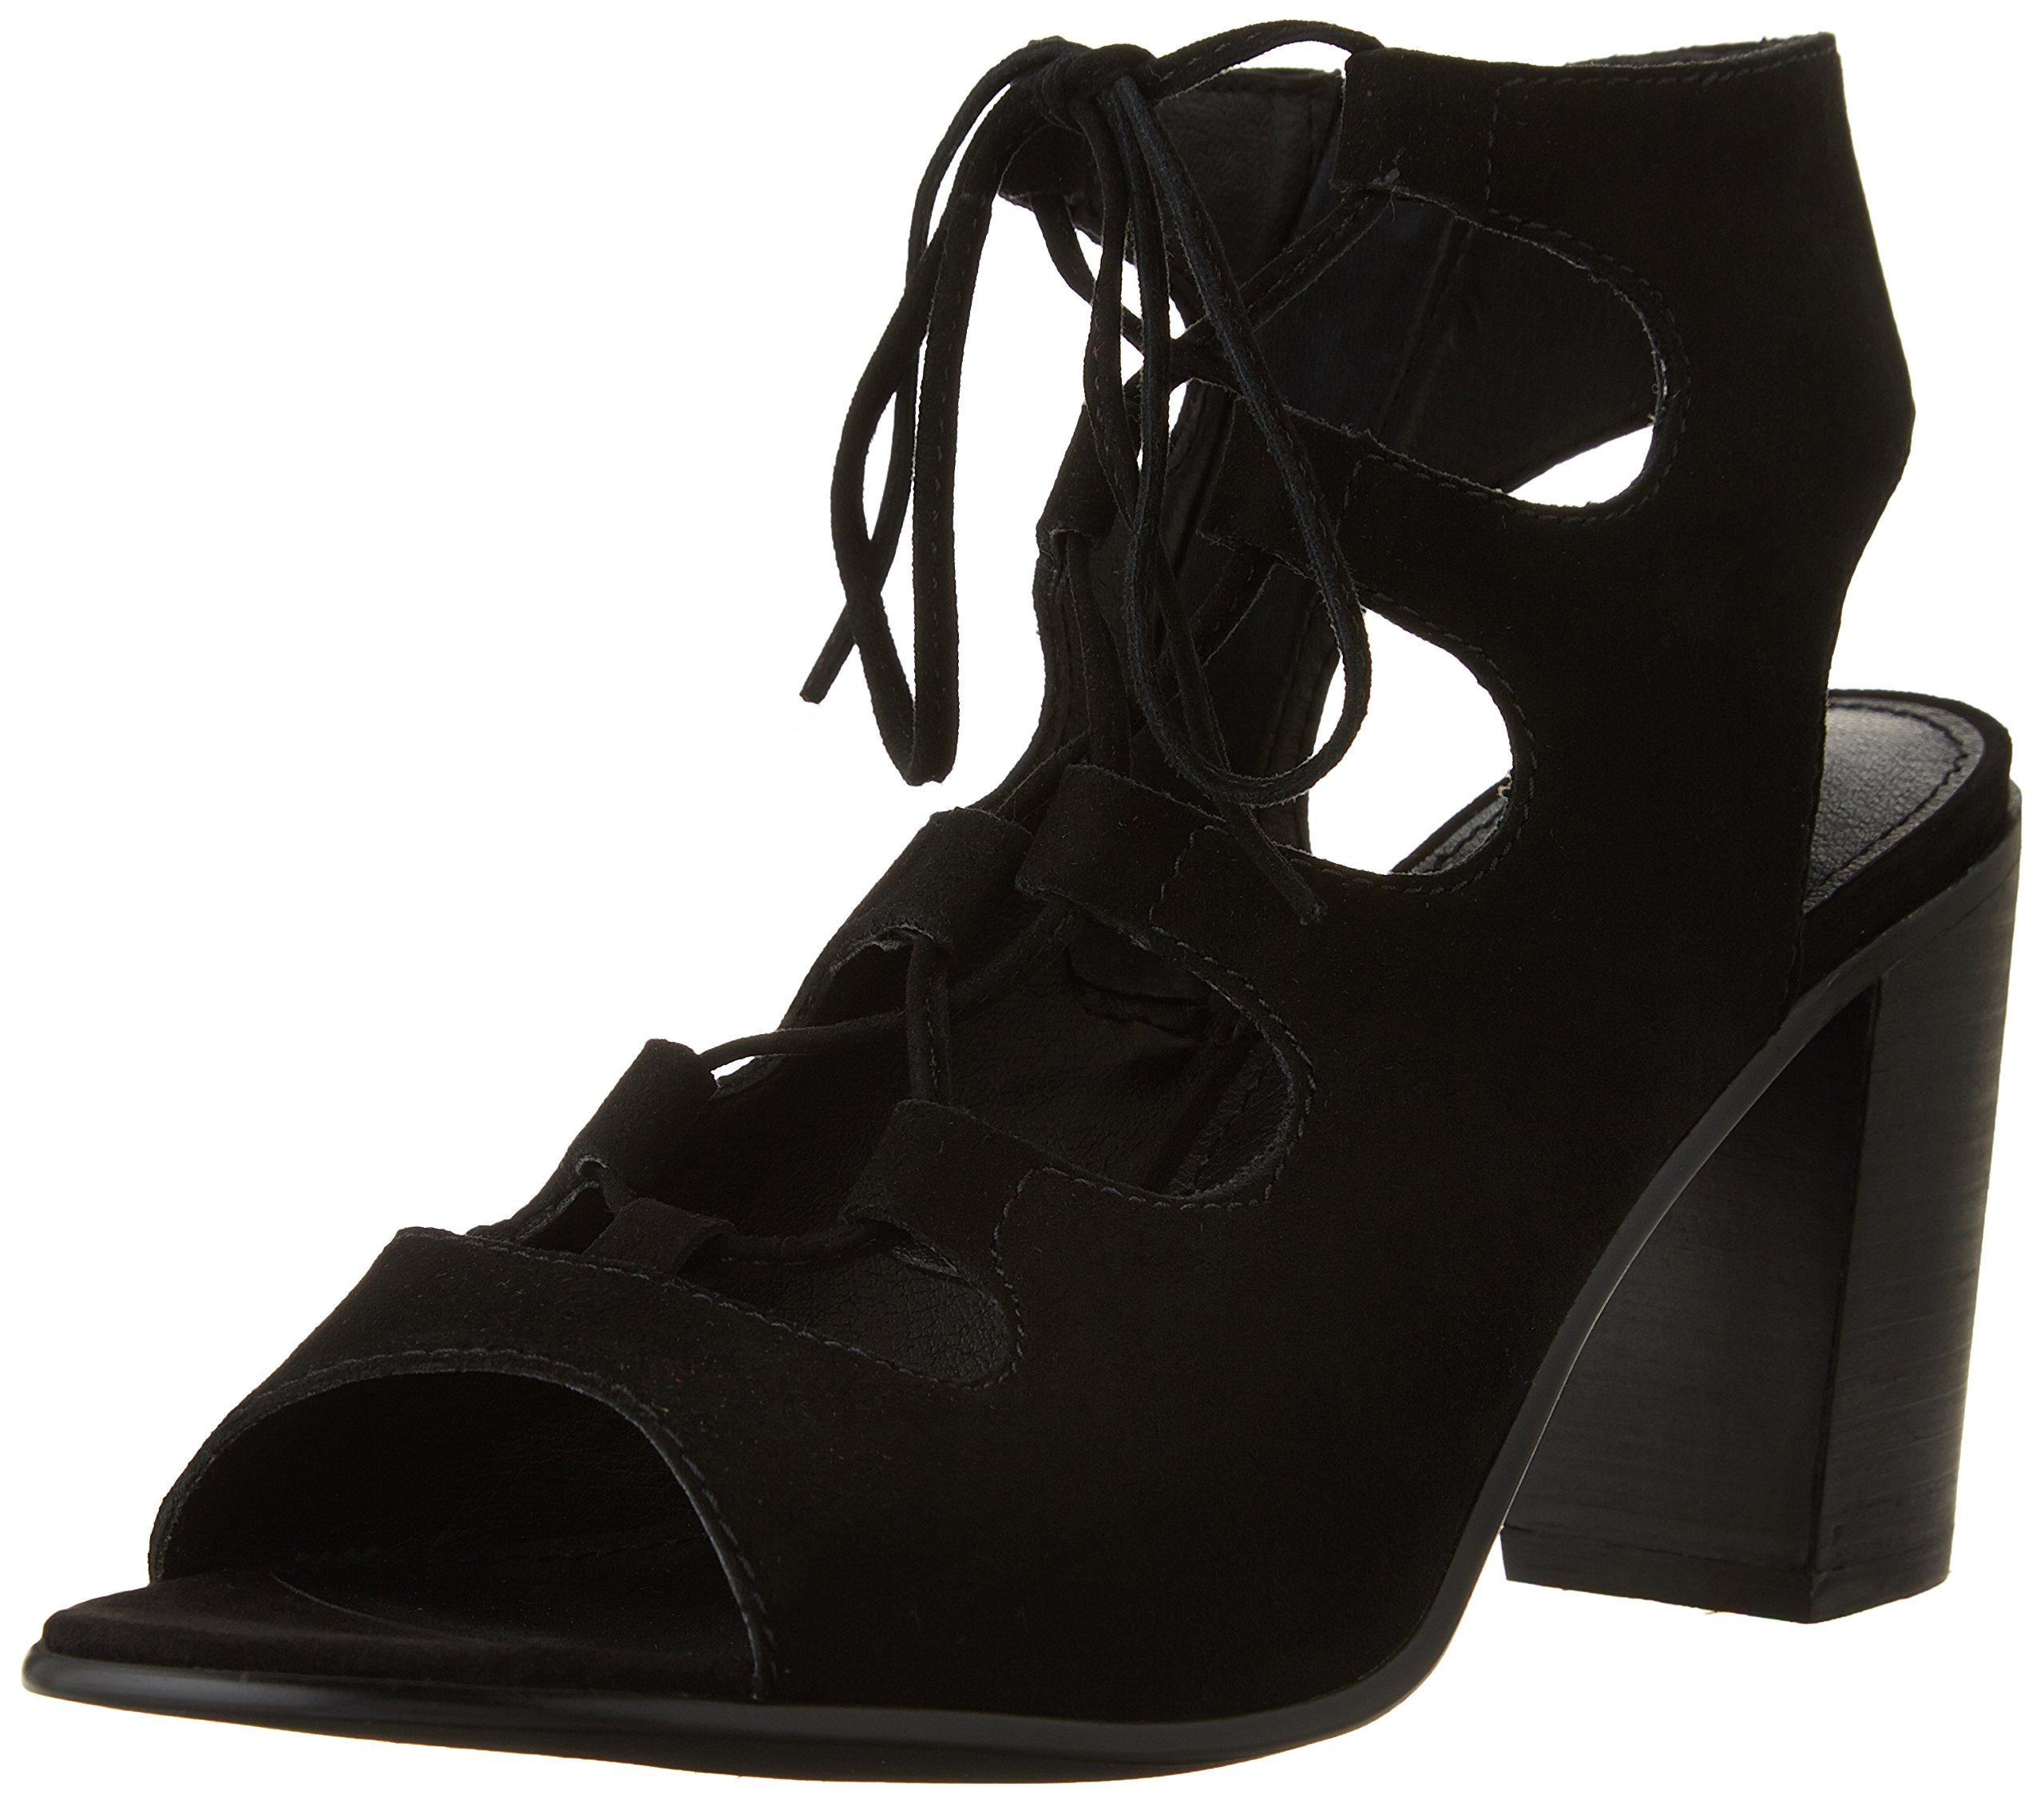 Steve Madden Women's Nilunda dress Sandal, Black Suede, 7 M US